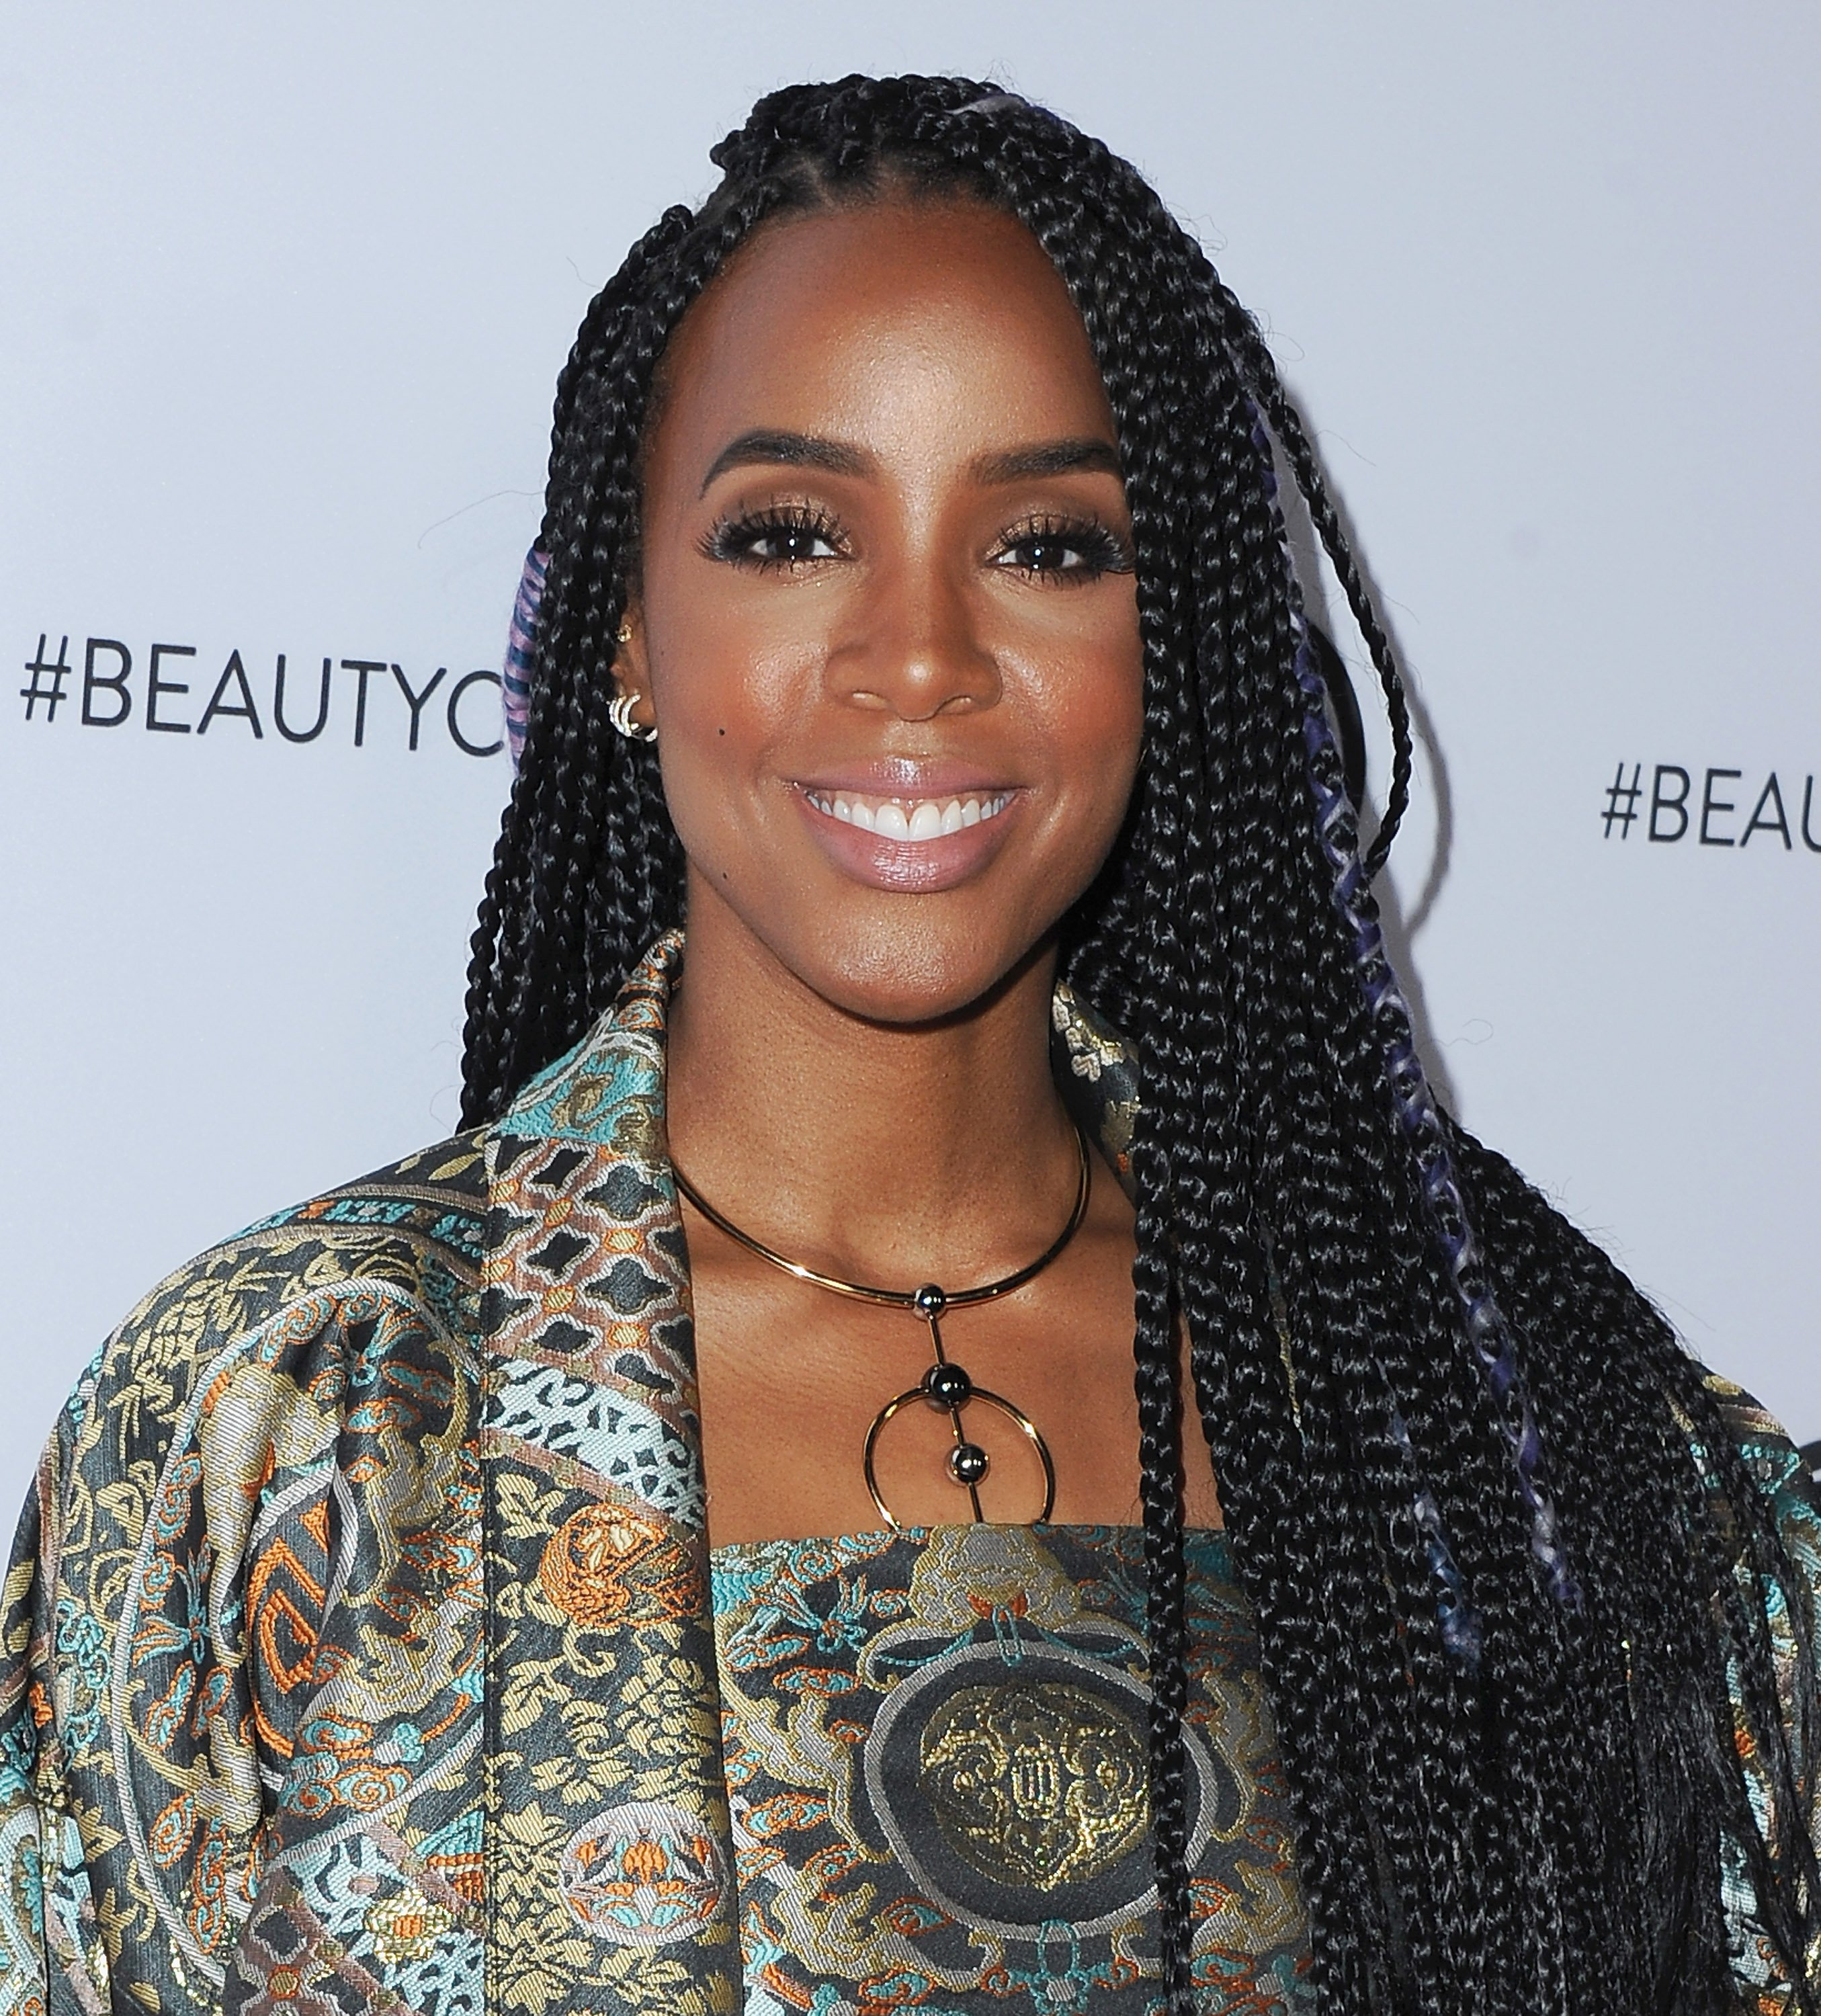 Kelly Rowland at the 5th Annual Beautycon Festival in Los Angeles, California, 2017. | Source: Getty Images